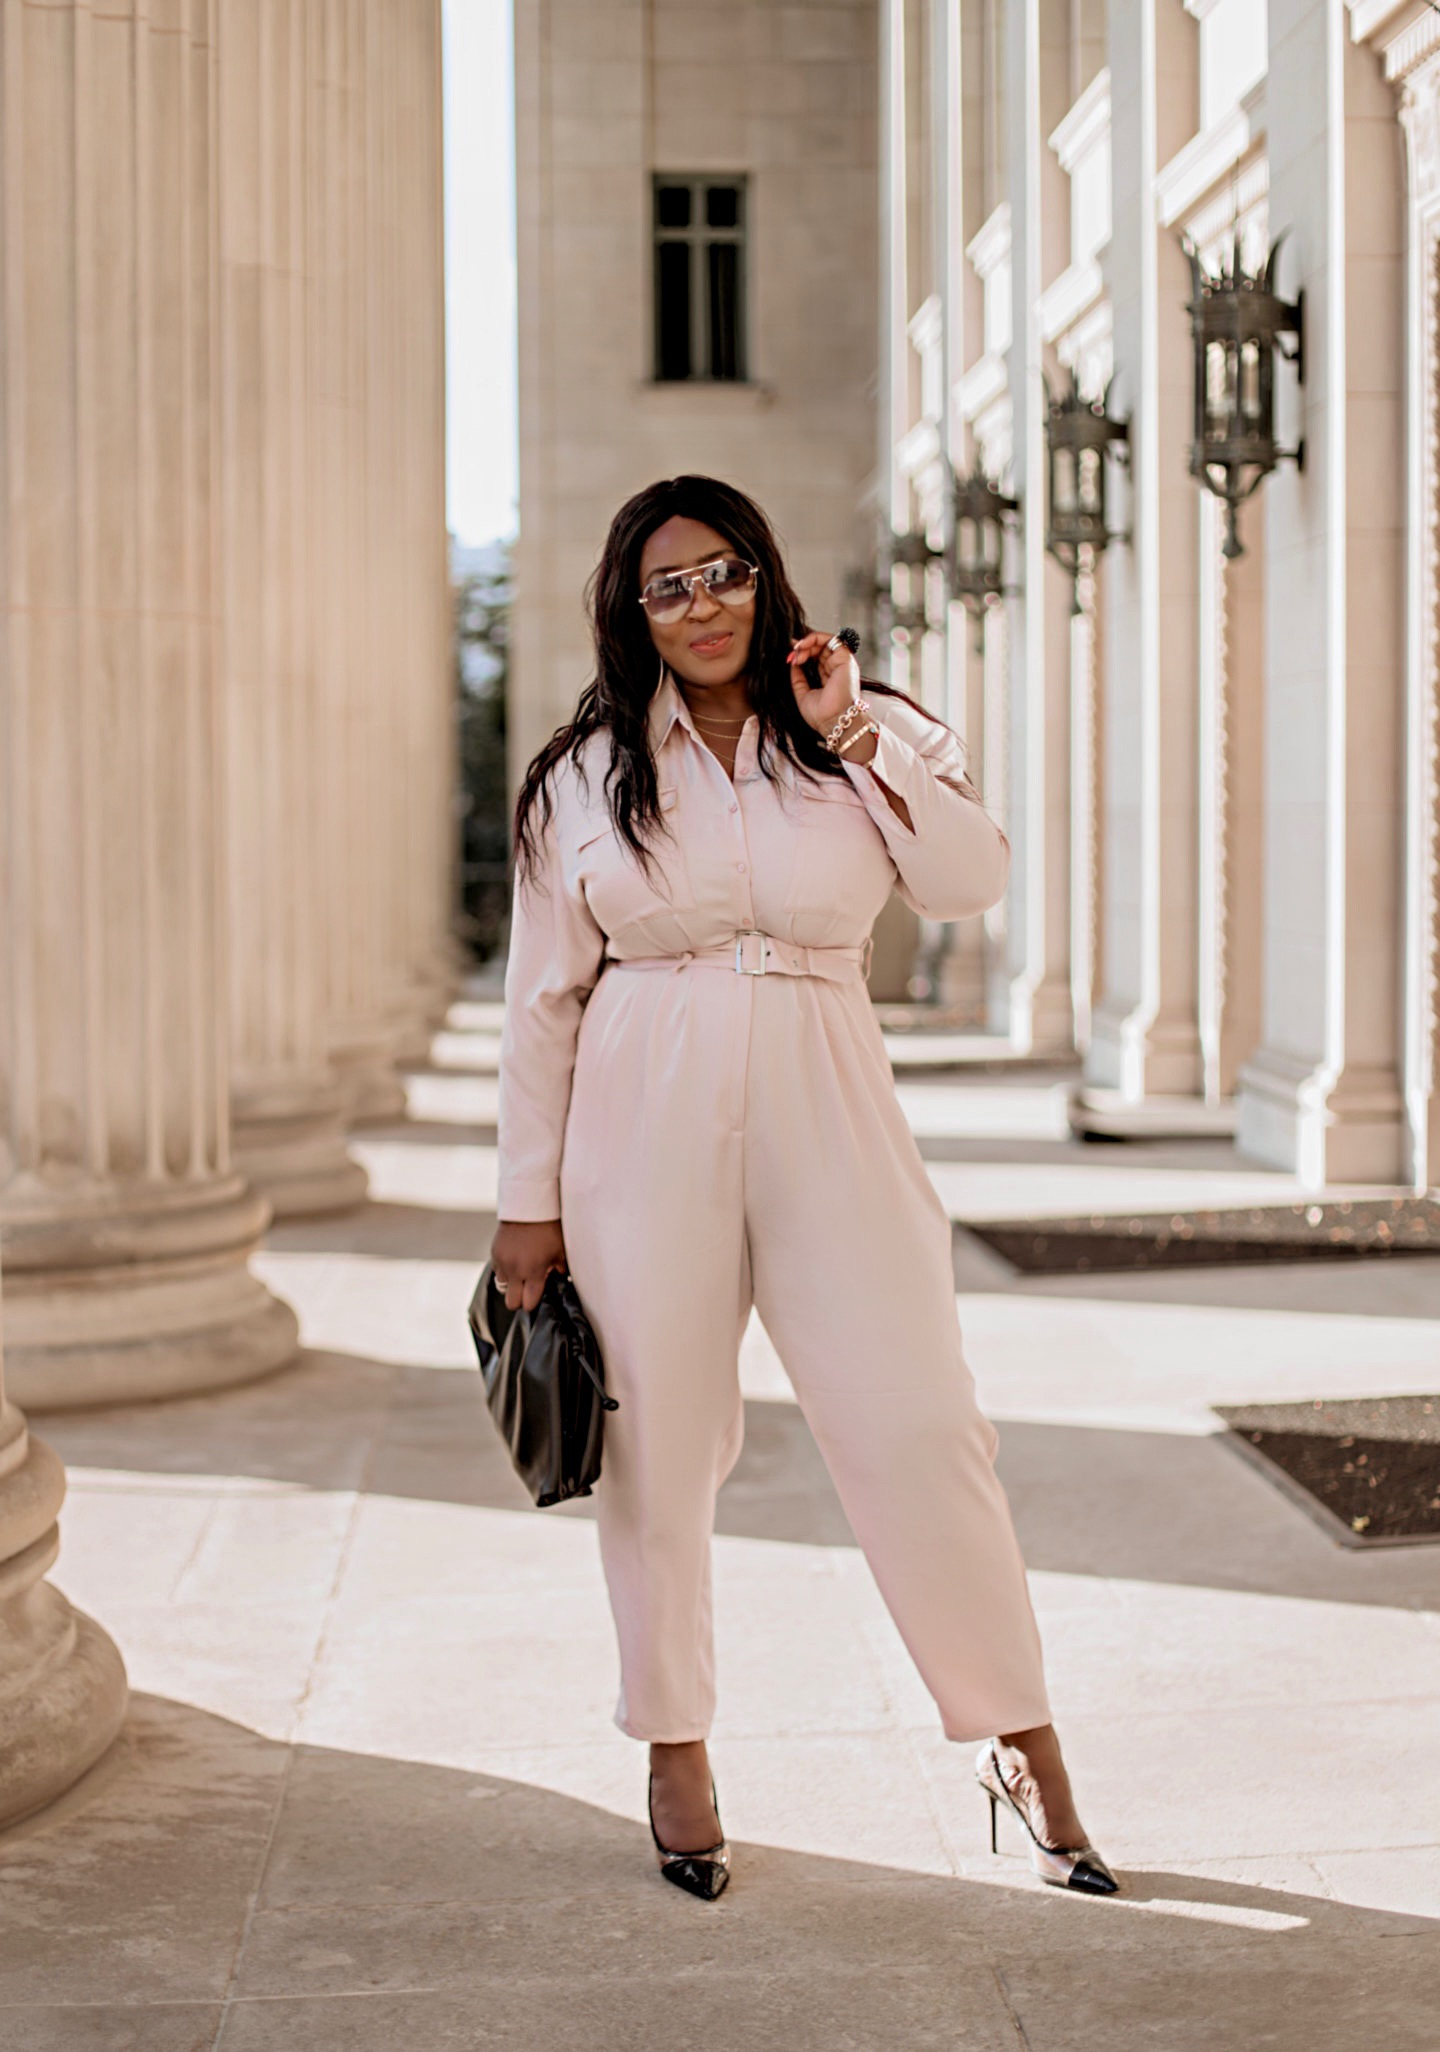 Keeping it Classy | Express Style Utility Jumpsuit